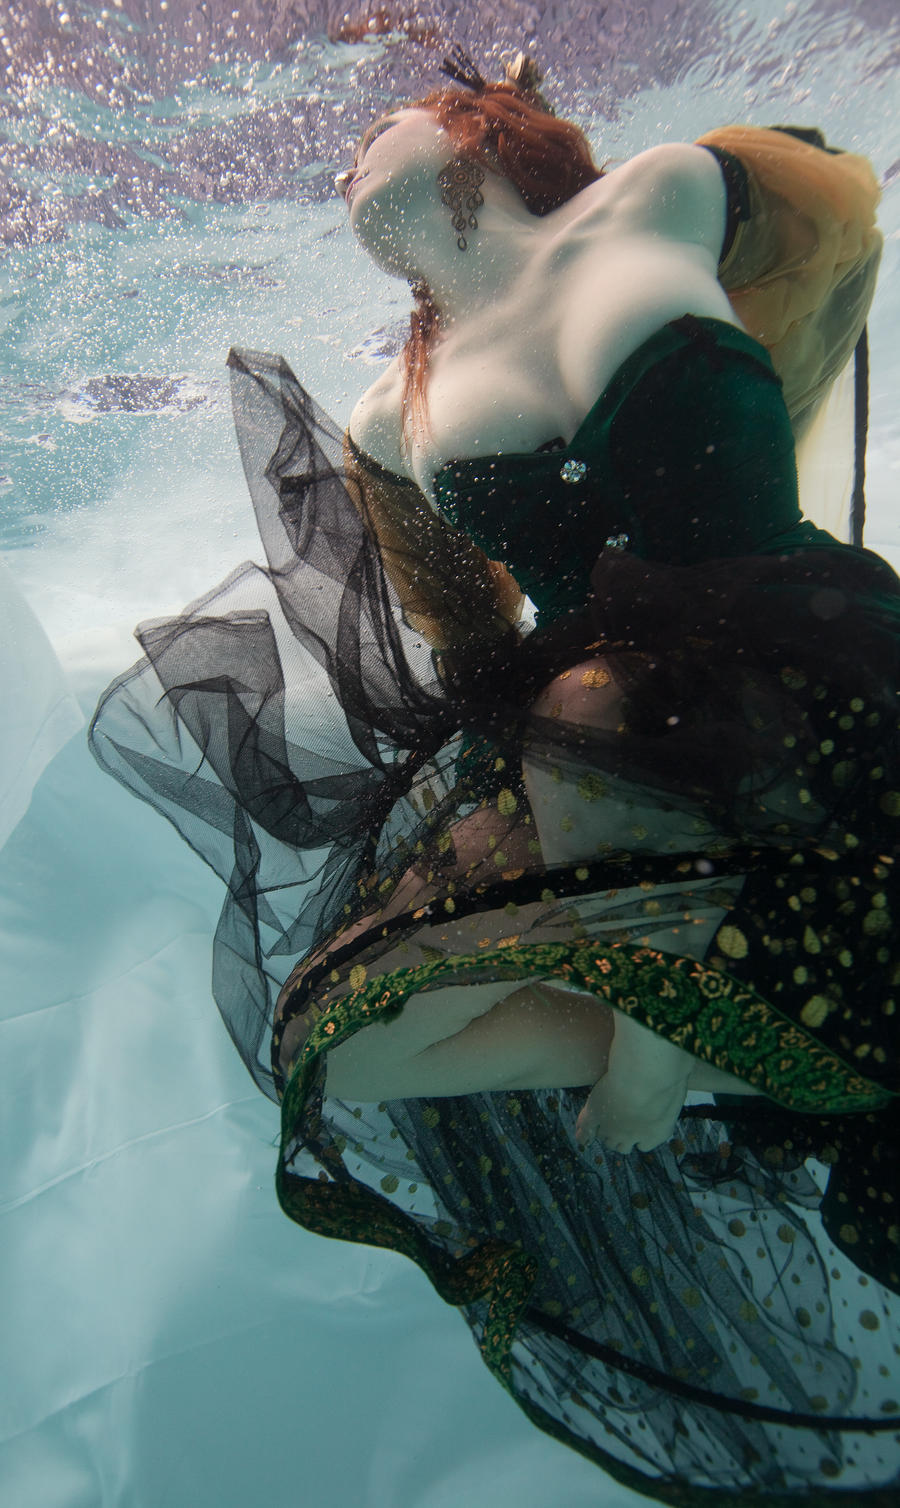 underwater 7 - Fav Edit by RynalinOnyx